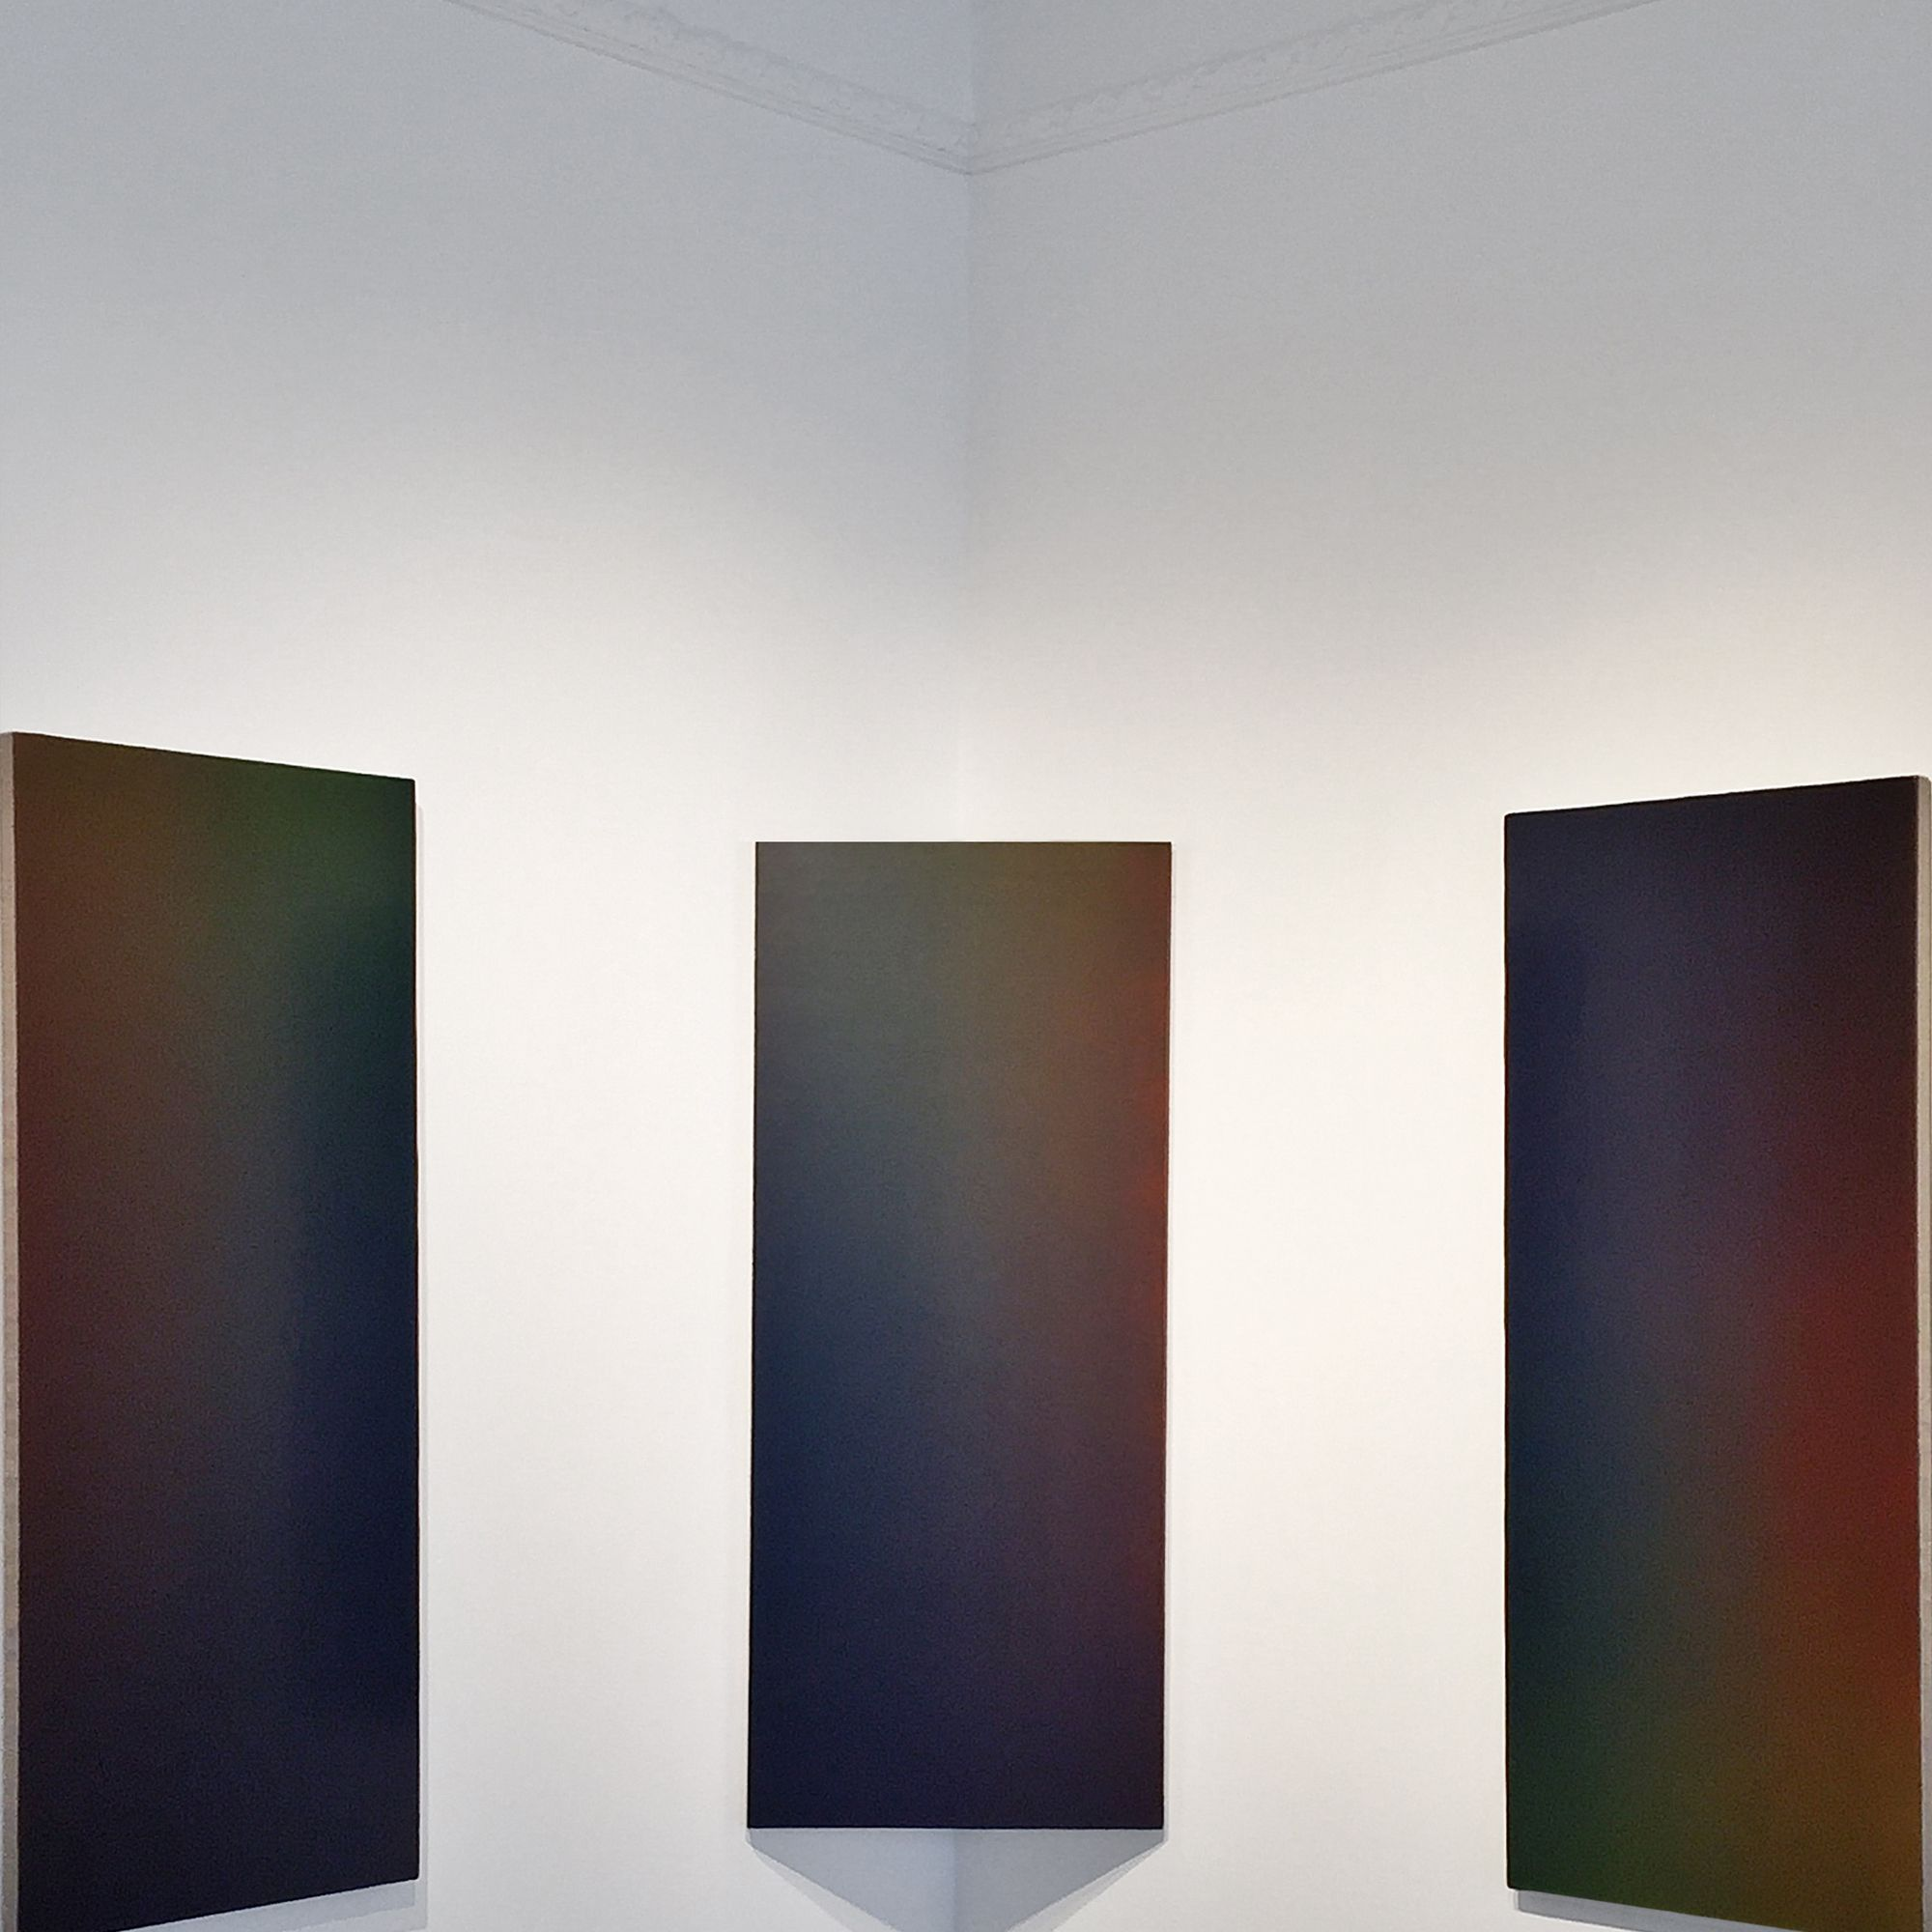 Adam Henry challenges the tradition of painting by reimagining the treatment of its surface.  His emulsion paintings are mesmerizing—displaying bands of color as they move through the spectrum.